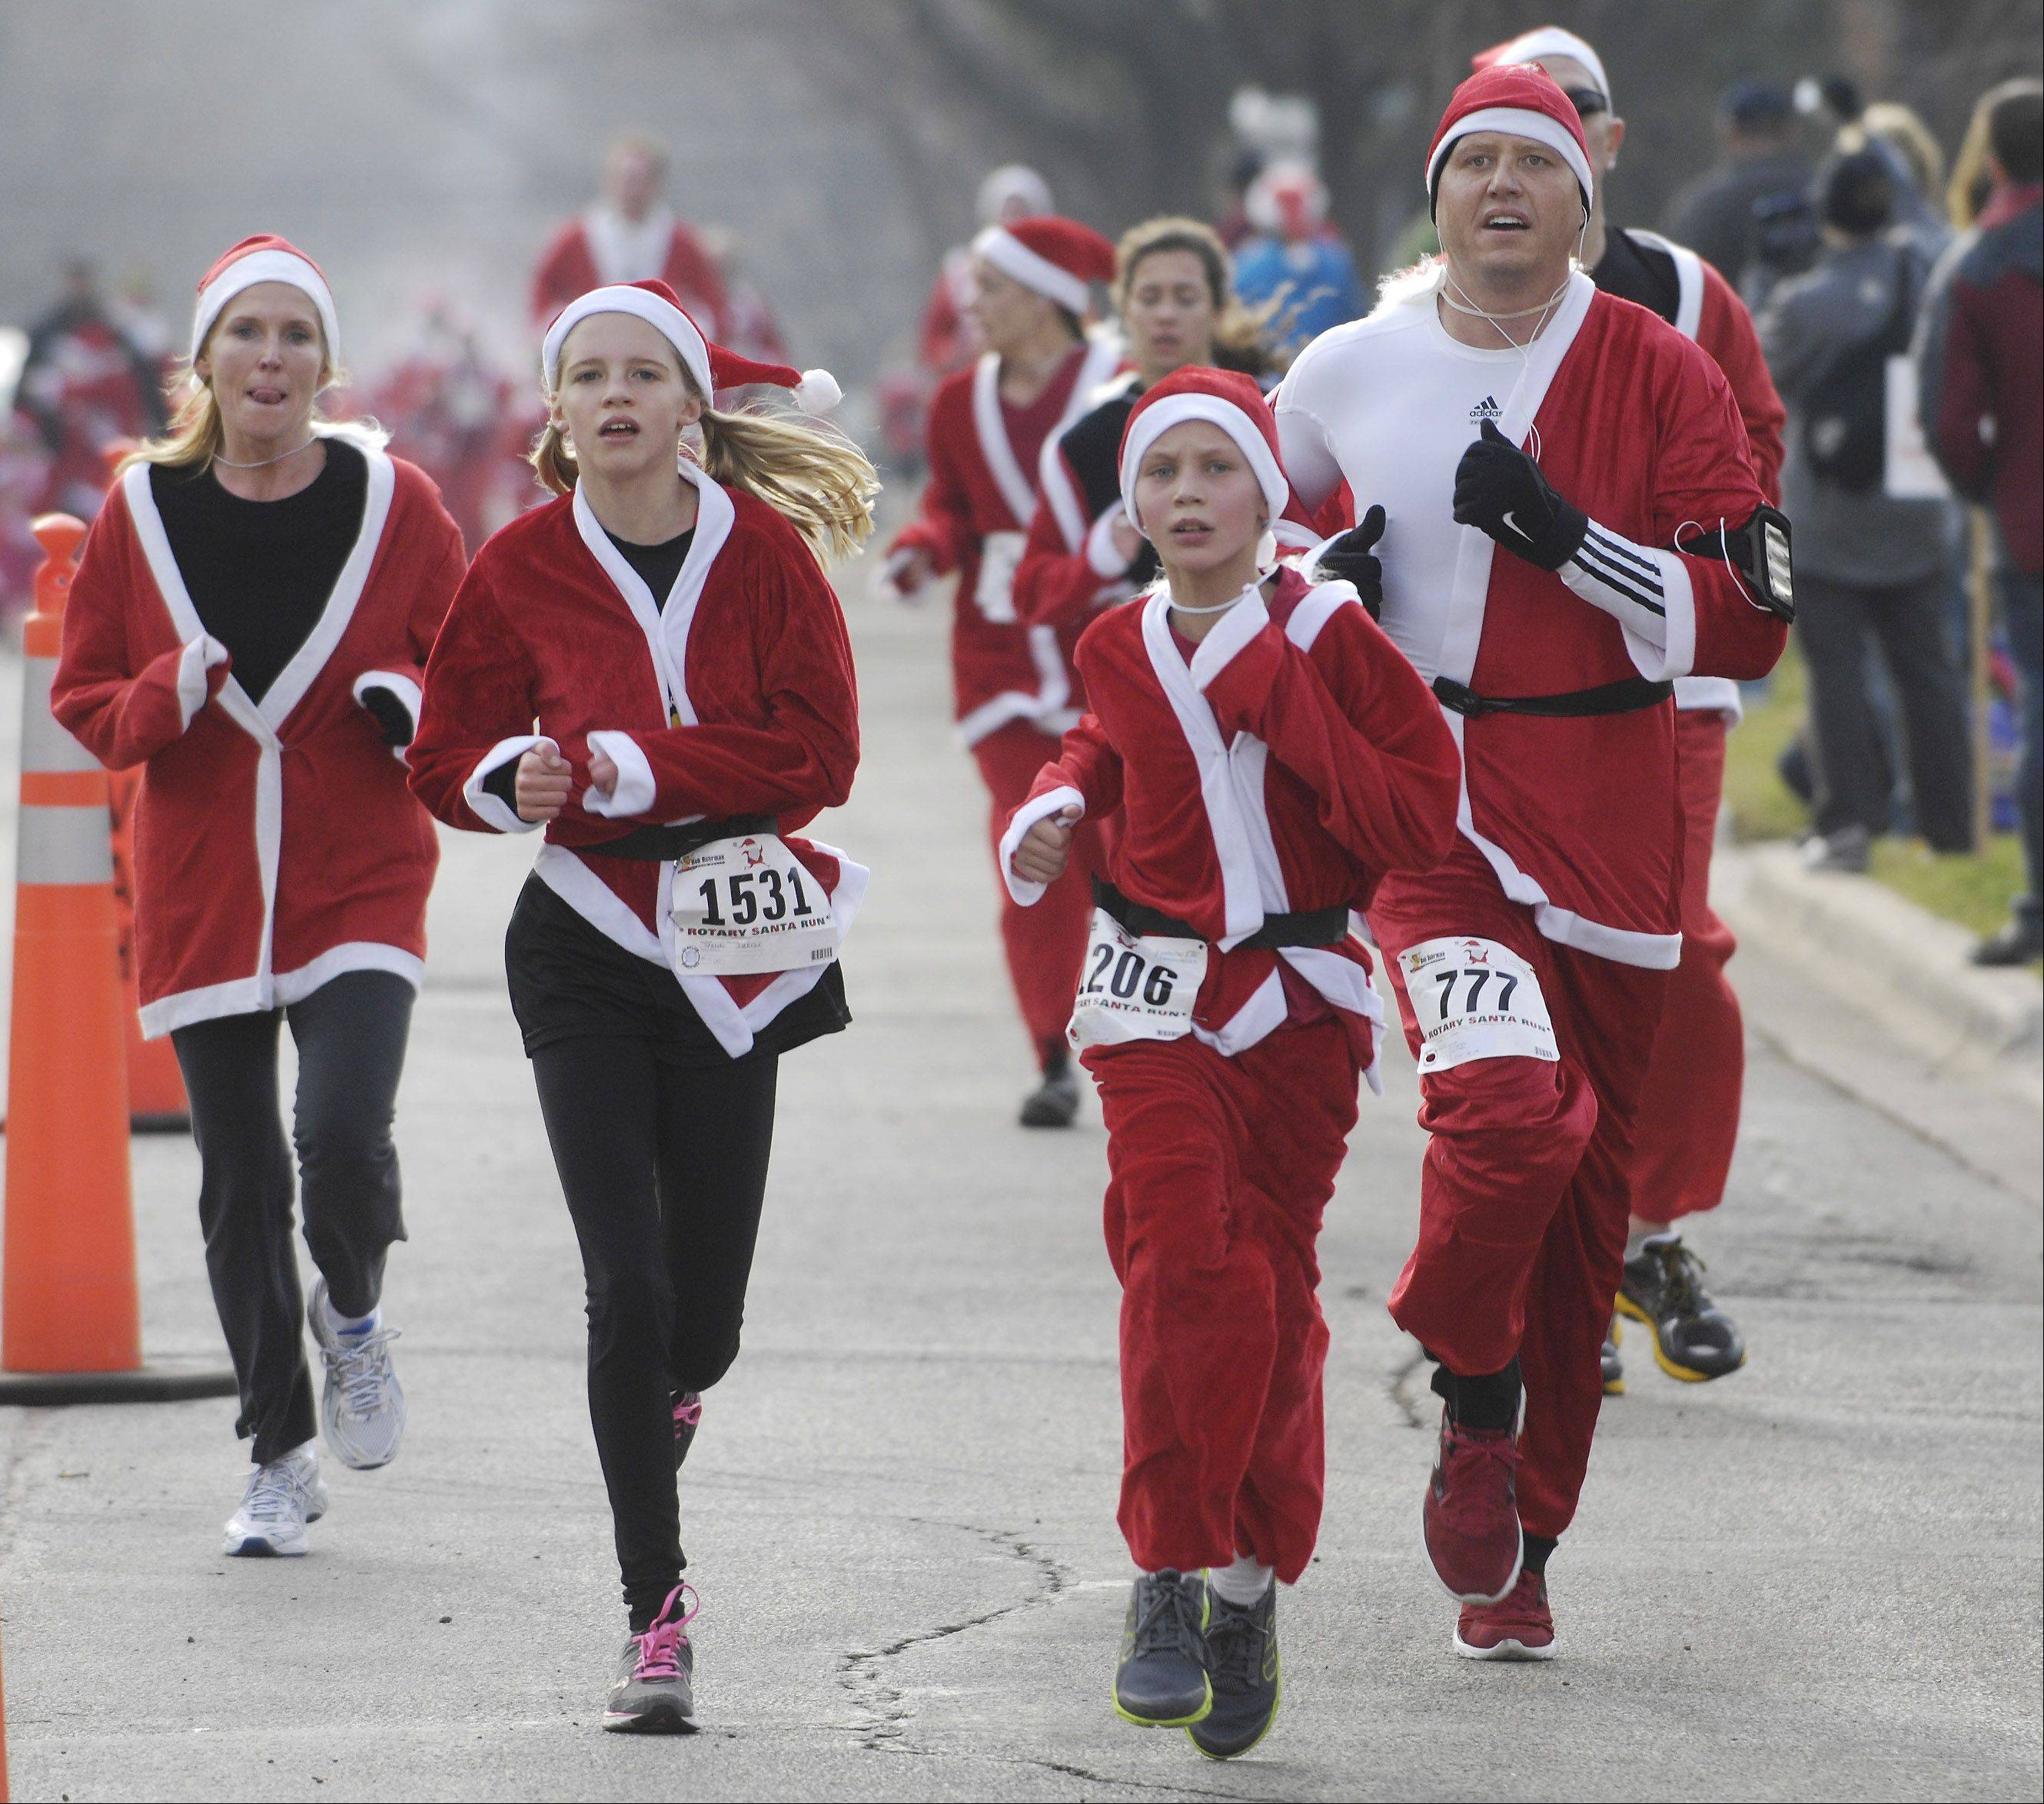 Runners approach the finish line during Saturday's 5k Santa Run in Arlington Heights.